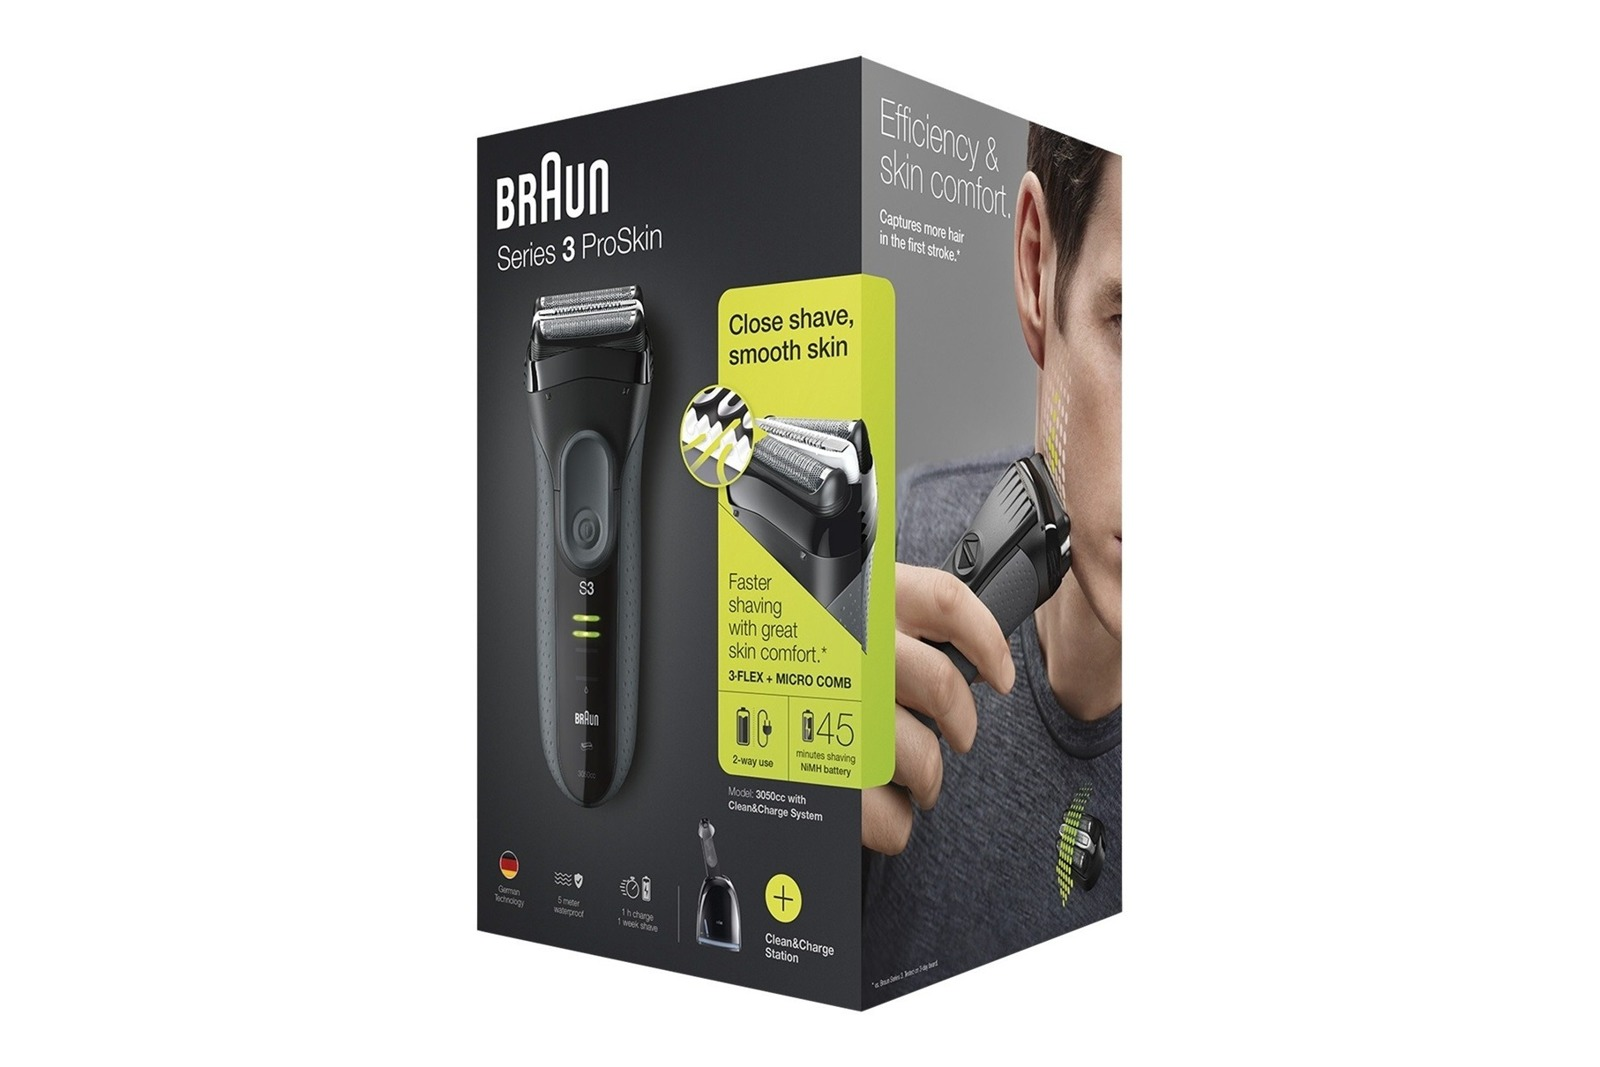 Braun Series 3 ProSkin 3050cc Shaver Grey + Clean&Charger Station